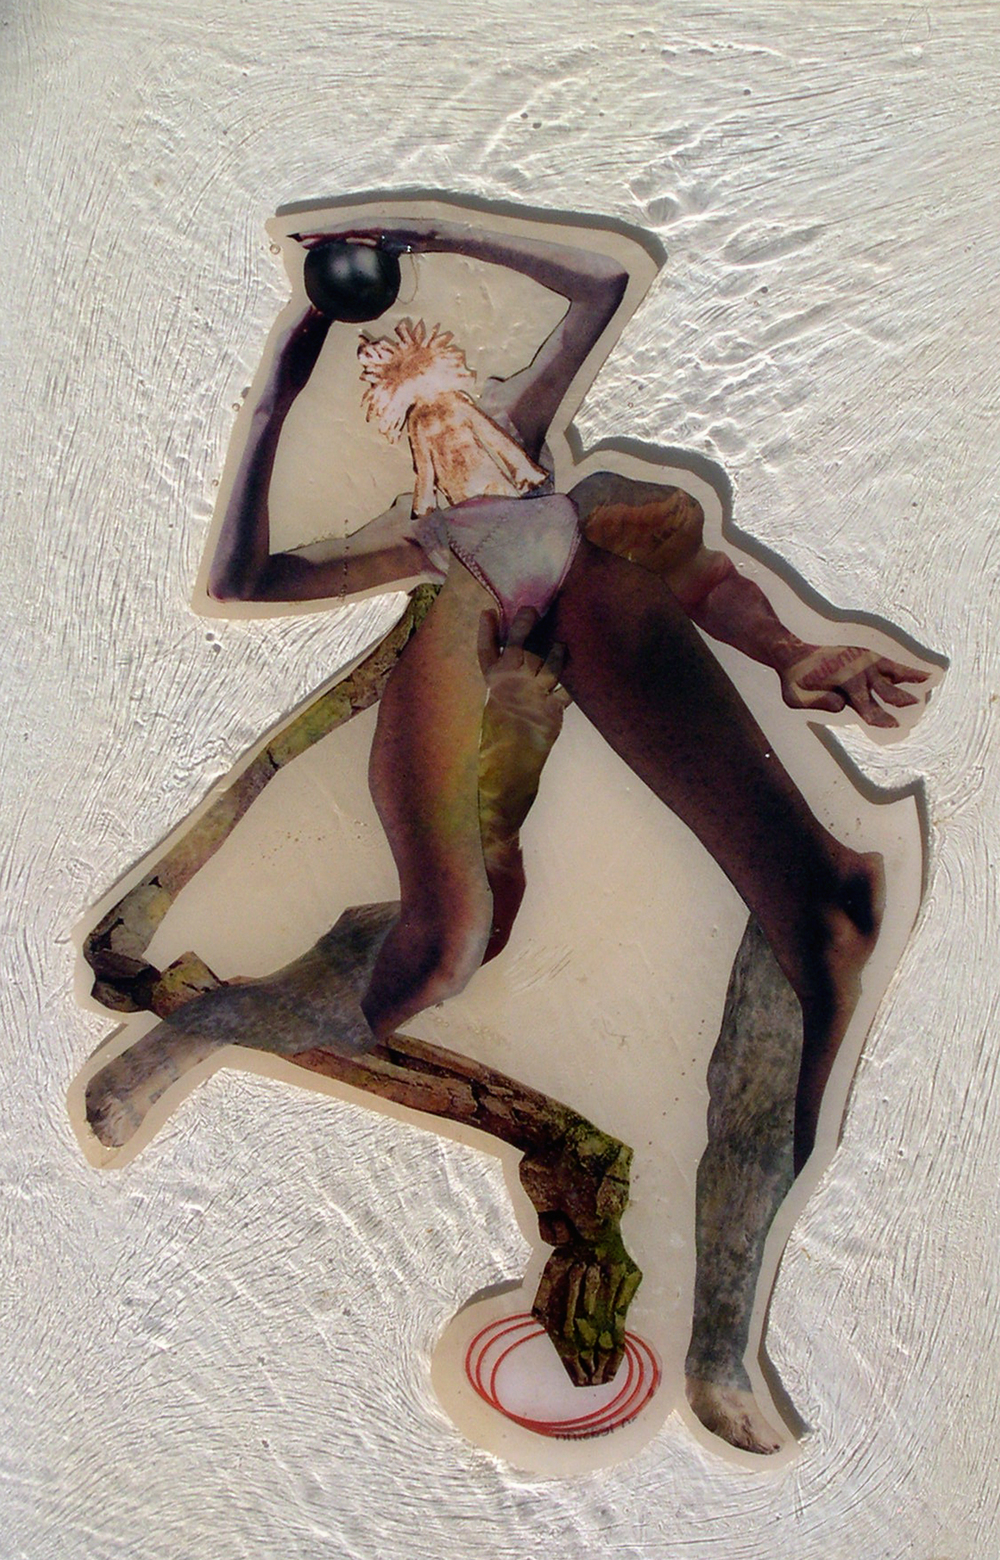 It's Run Away Without Her,  2004, Self-produced photographs and appropriated printed materials cast in plastic resin. 7.25 X 10.25""